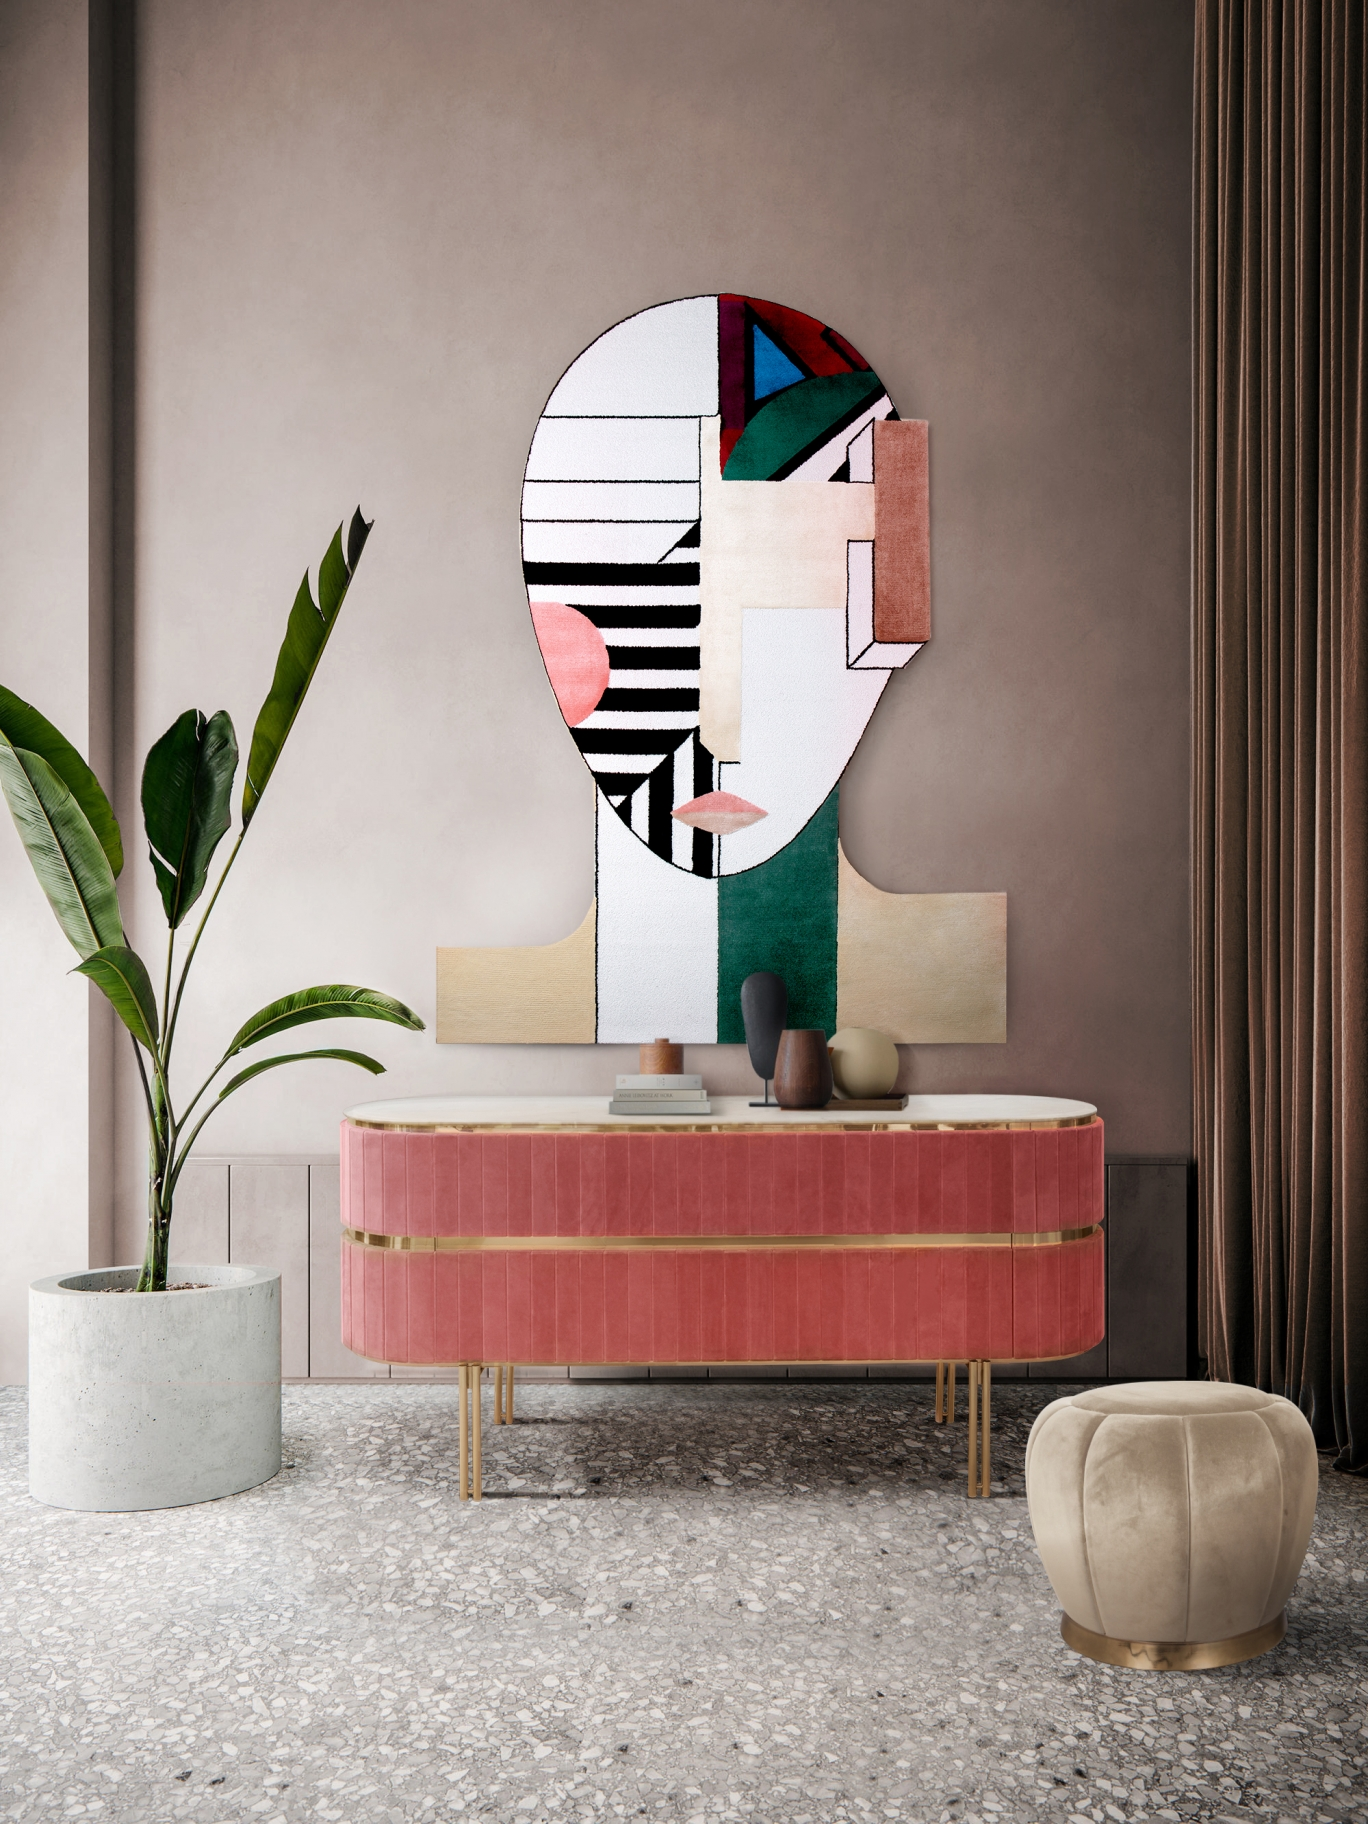 Hallway Decor for a Stunning Memorable Foyer hallway decorating Hallway decorating-fill the space with personality colorful hallway with oscar geometric rug 000000 rug society